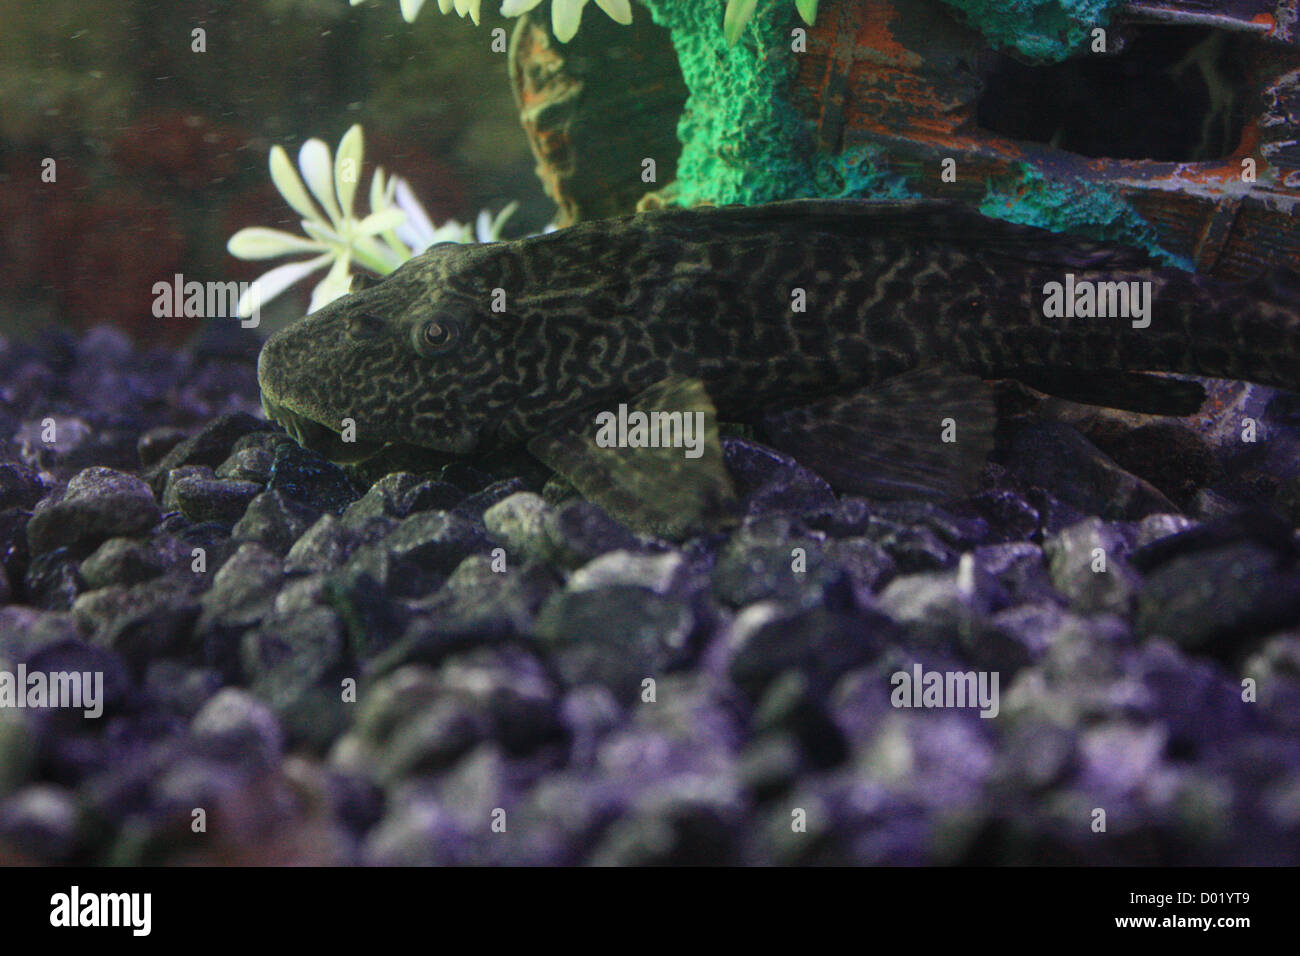 Freshwater Aquarium Fish In Dubai - Freshwater fish aquarium fish tropical fish pictures of fish fish tanks